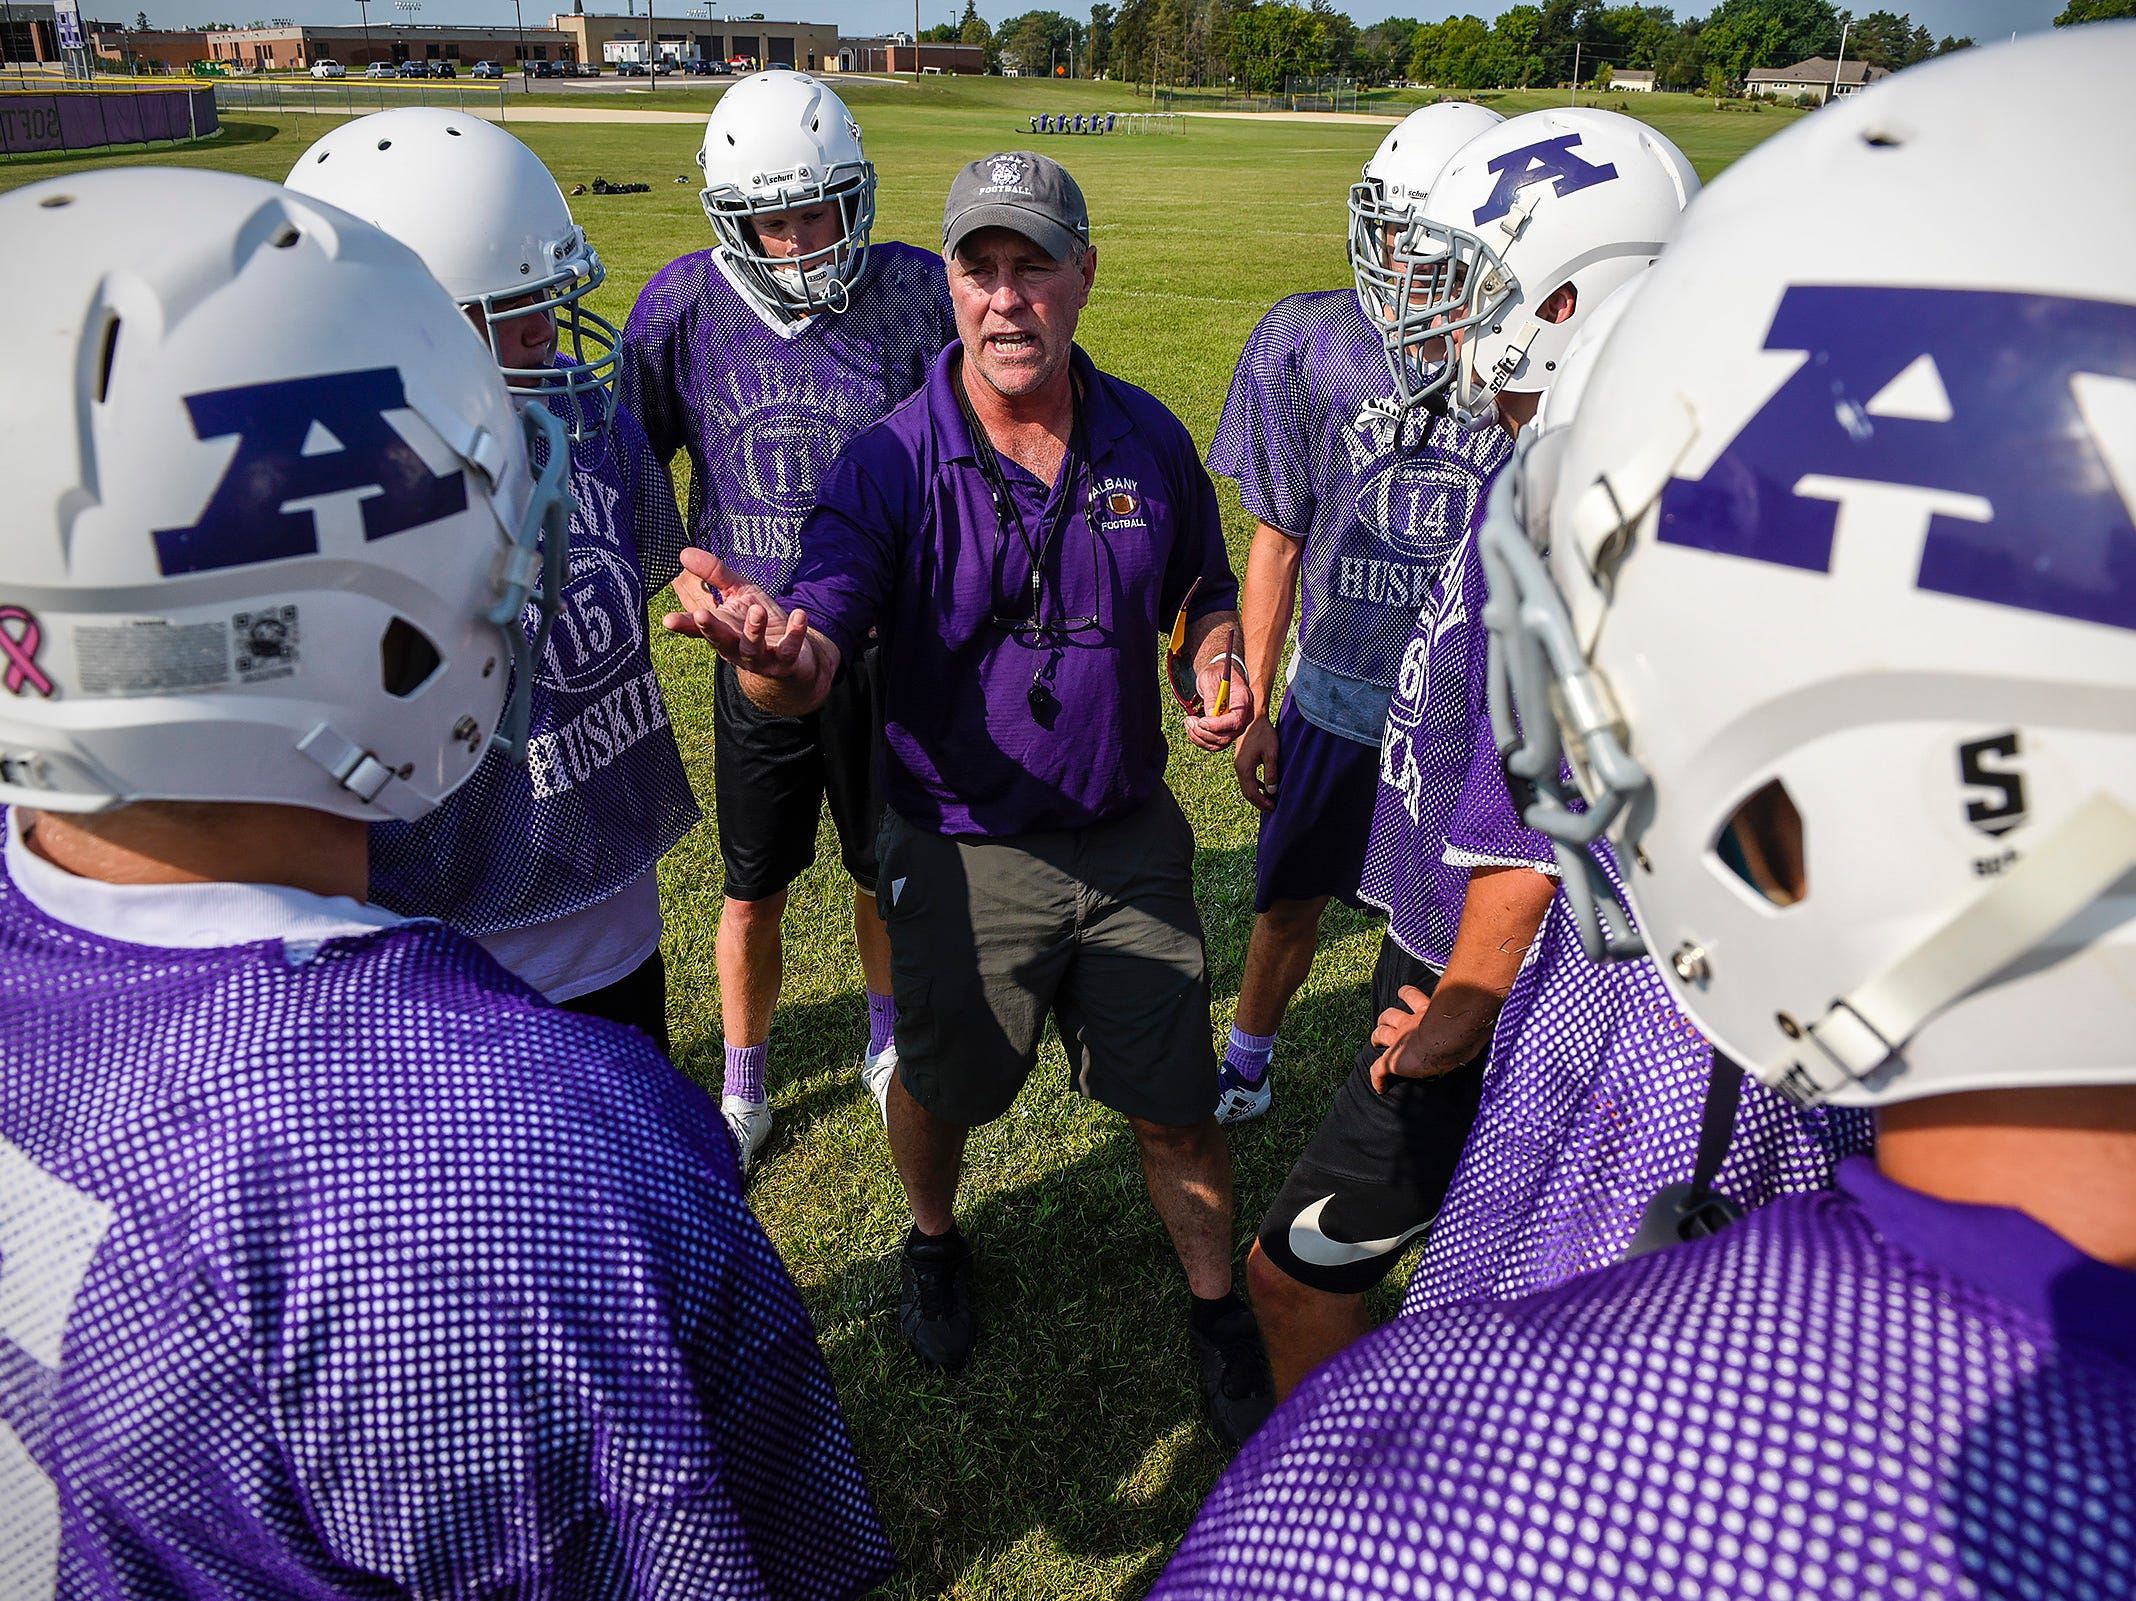 Albany coach Mike Kleinschmidt talks with players during a huddle Wednesday, Aug. 15, at the Albany High School.